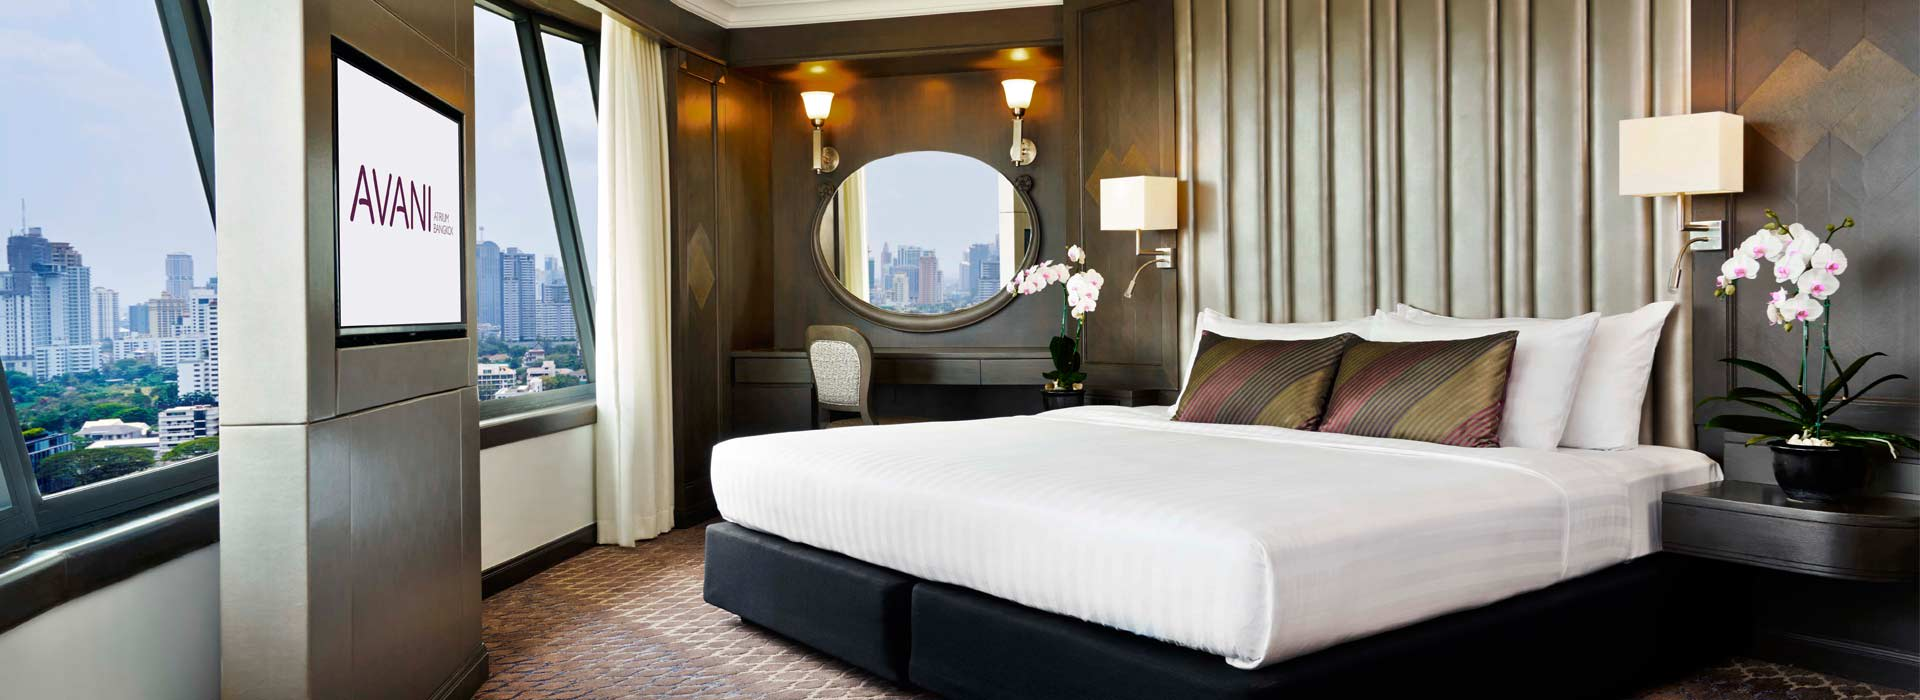 Grand Executive suite of one of the Bangkok City Hotels